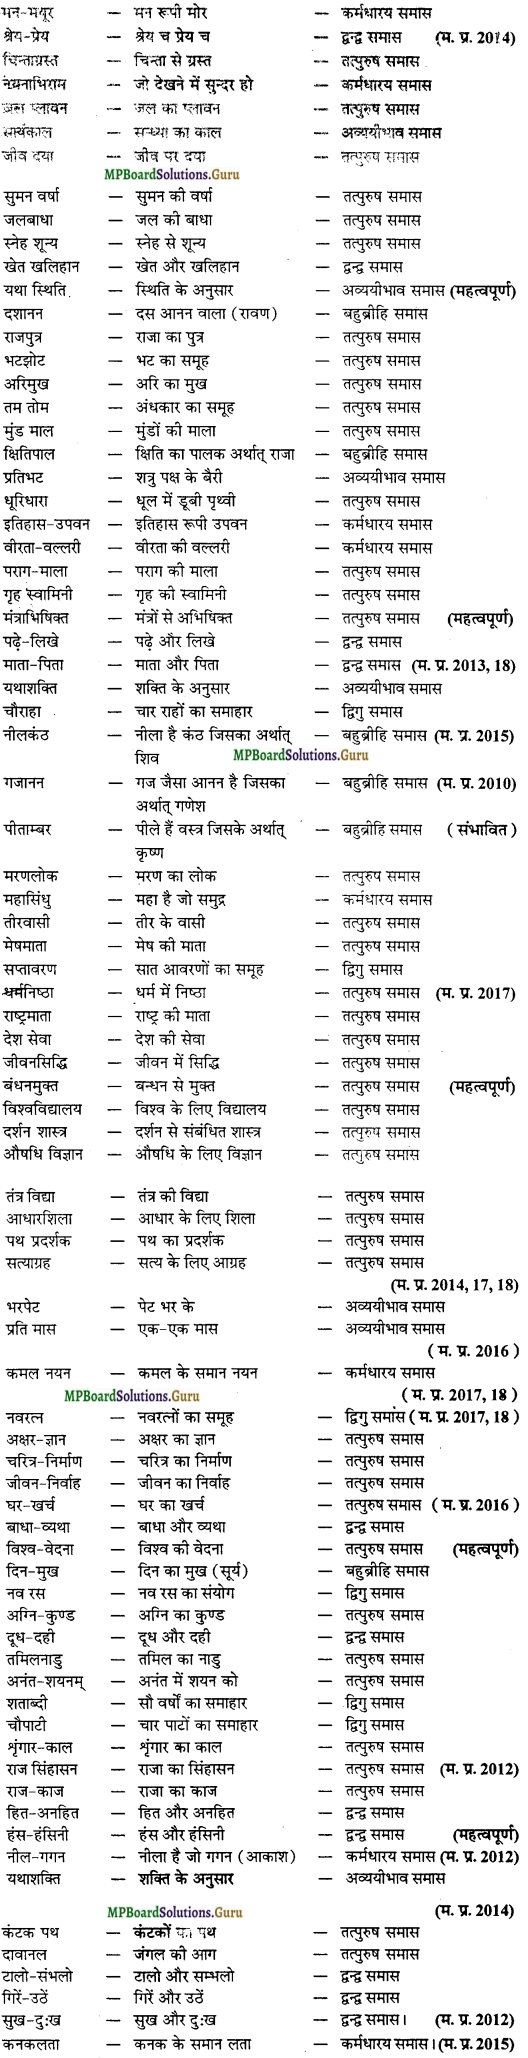 MP Board Class 12th General Hindi व्याकरण Important Questions img 3